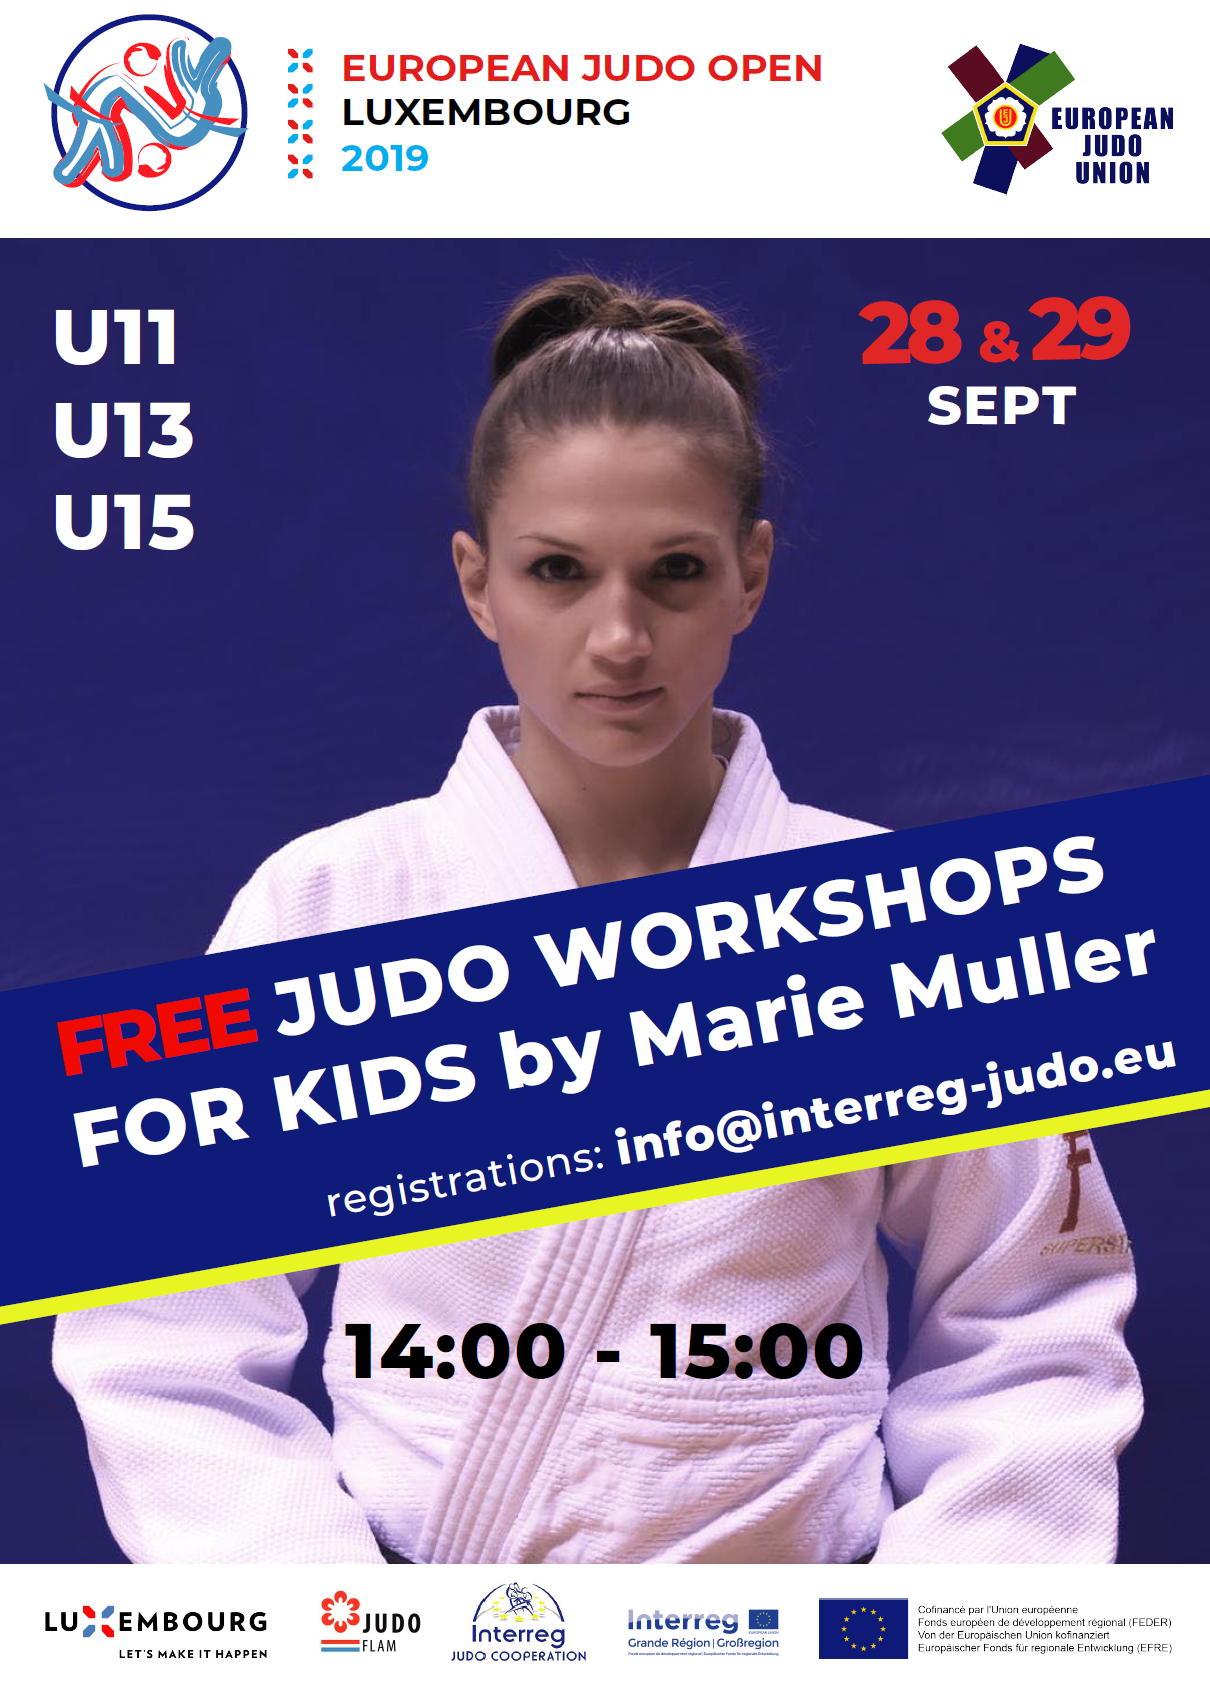 Free Workshops for Kids by Marie Muller